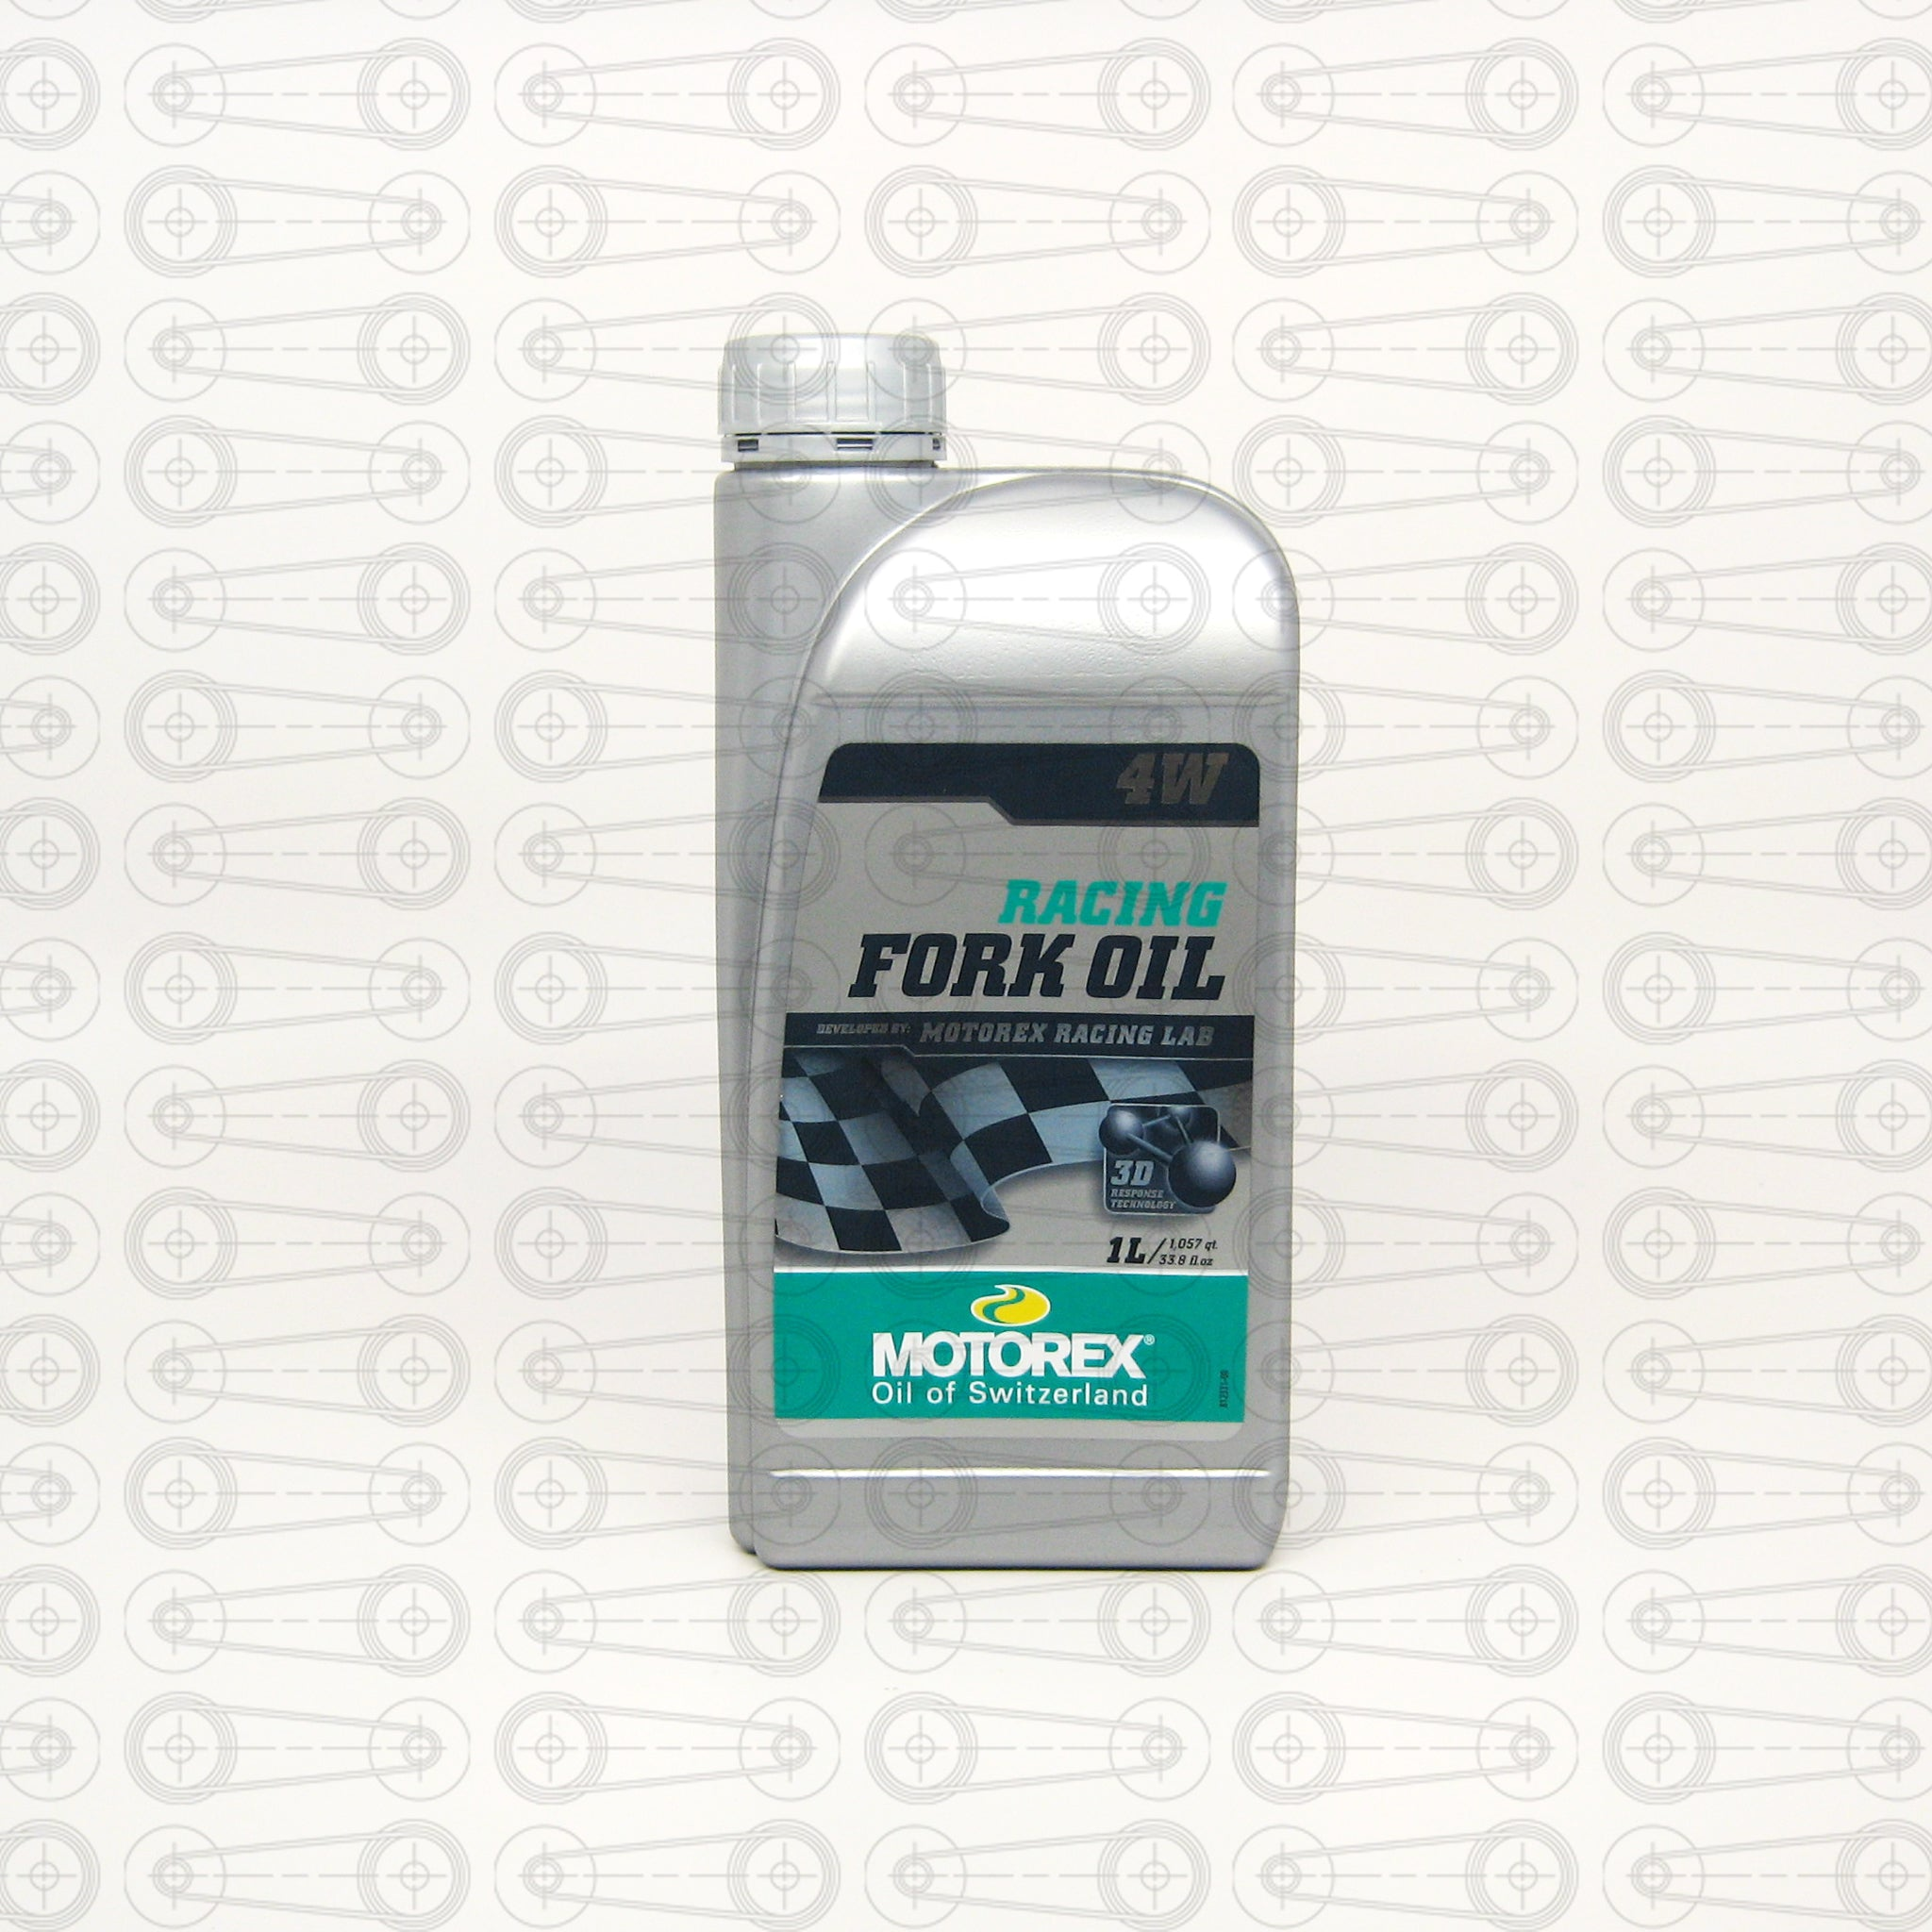 Motorex Racing - Low Friction 5W Fork Oil